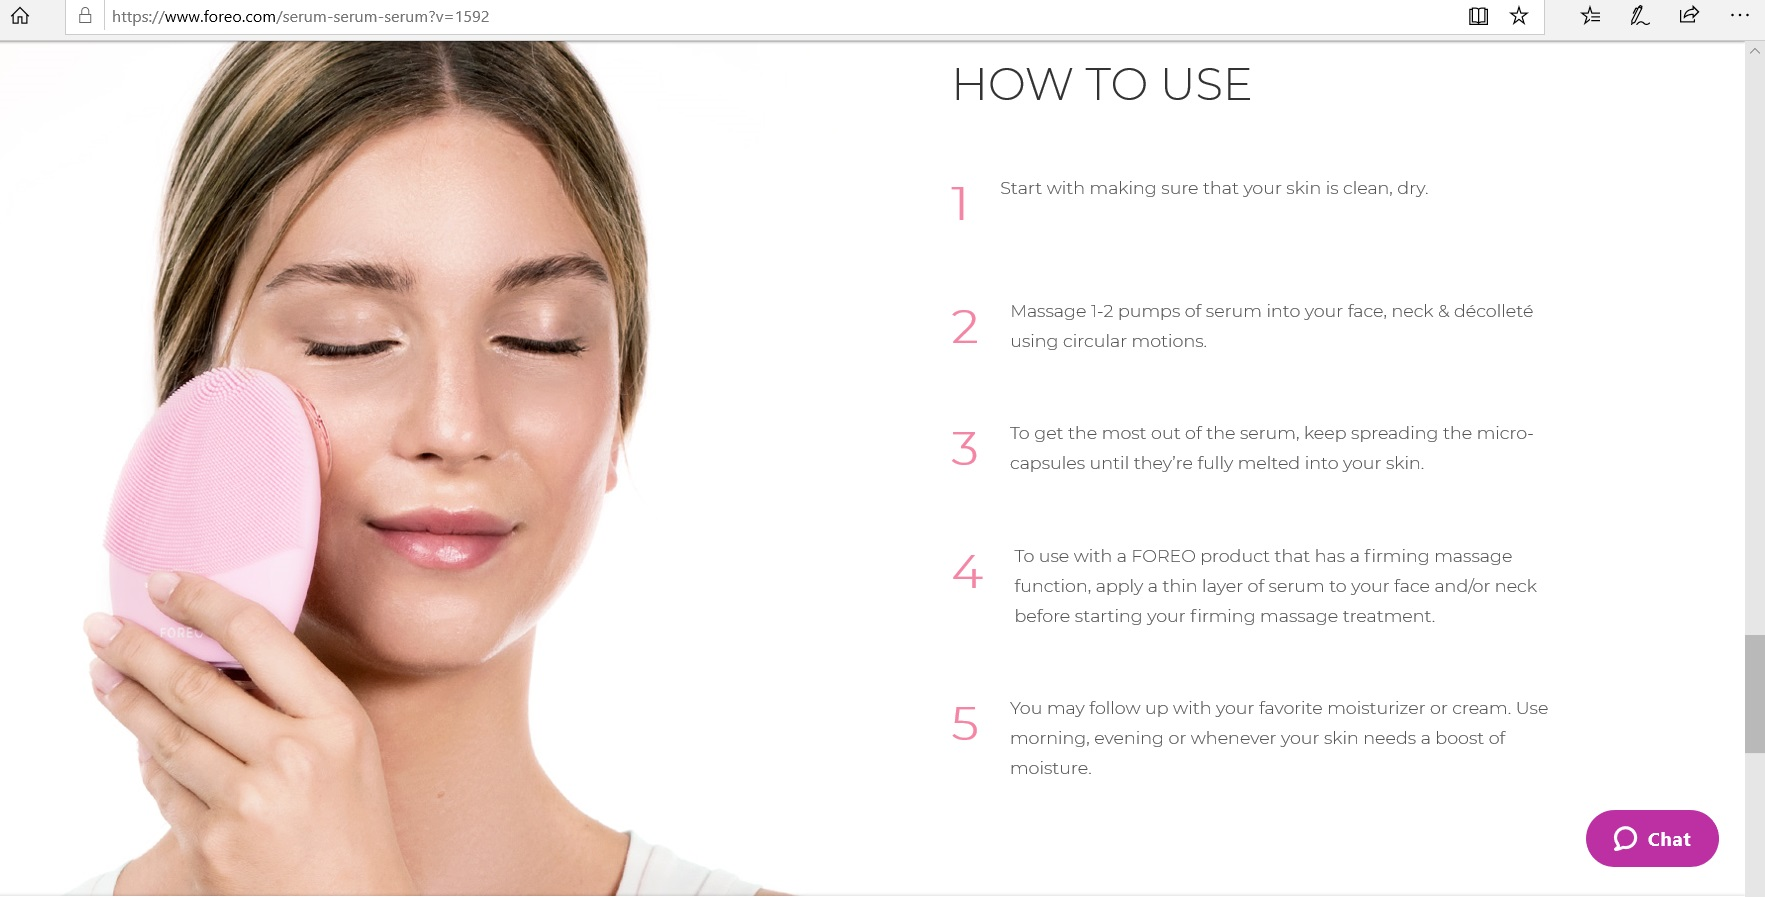 Instructions on how to use the serum.